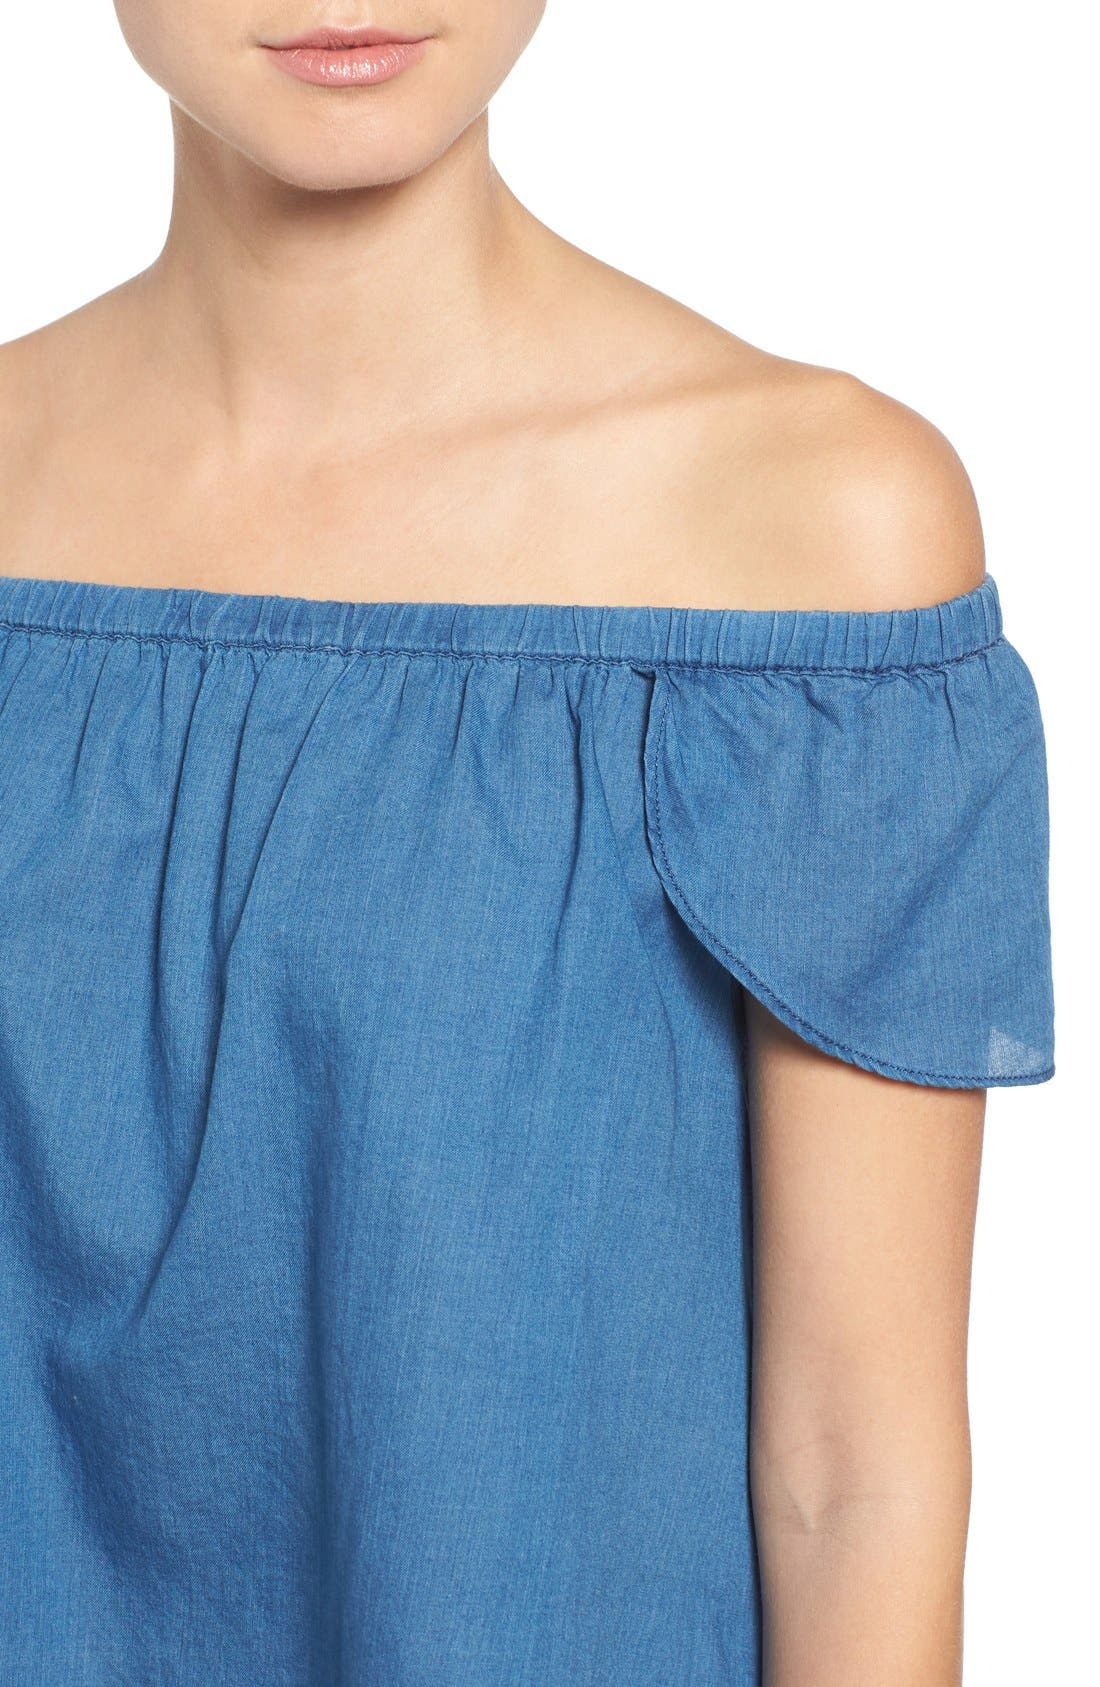 MADEWELL,                             Off the Shoulder Cotton Top,                             Alternate thumbnail 5, color,                             400